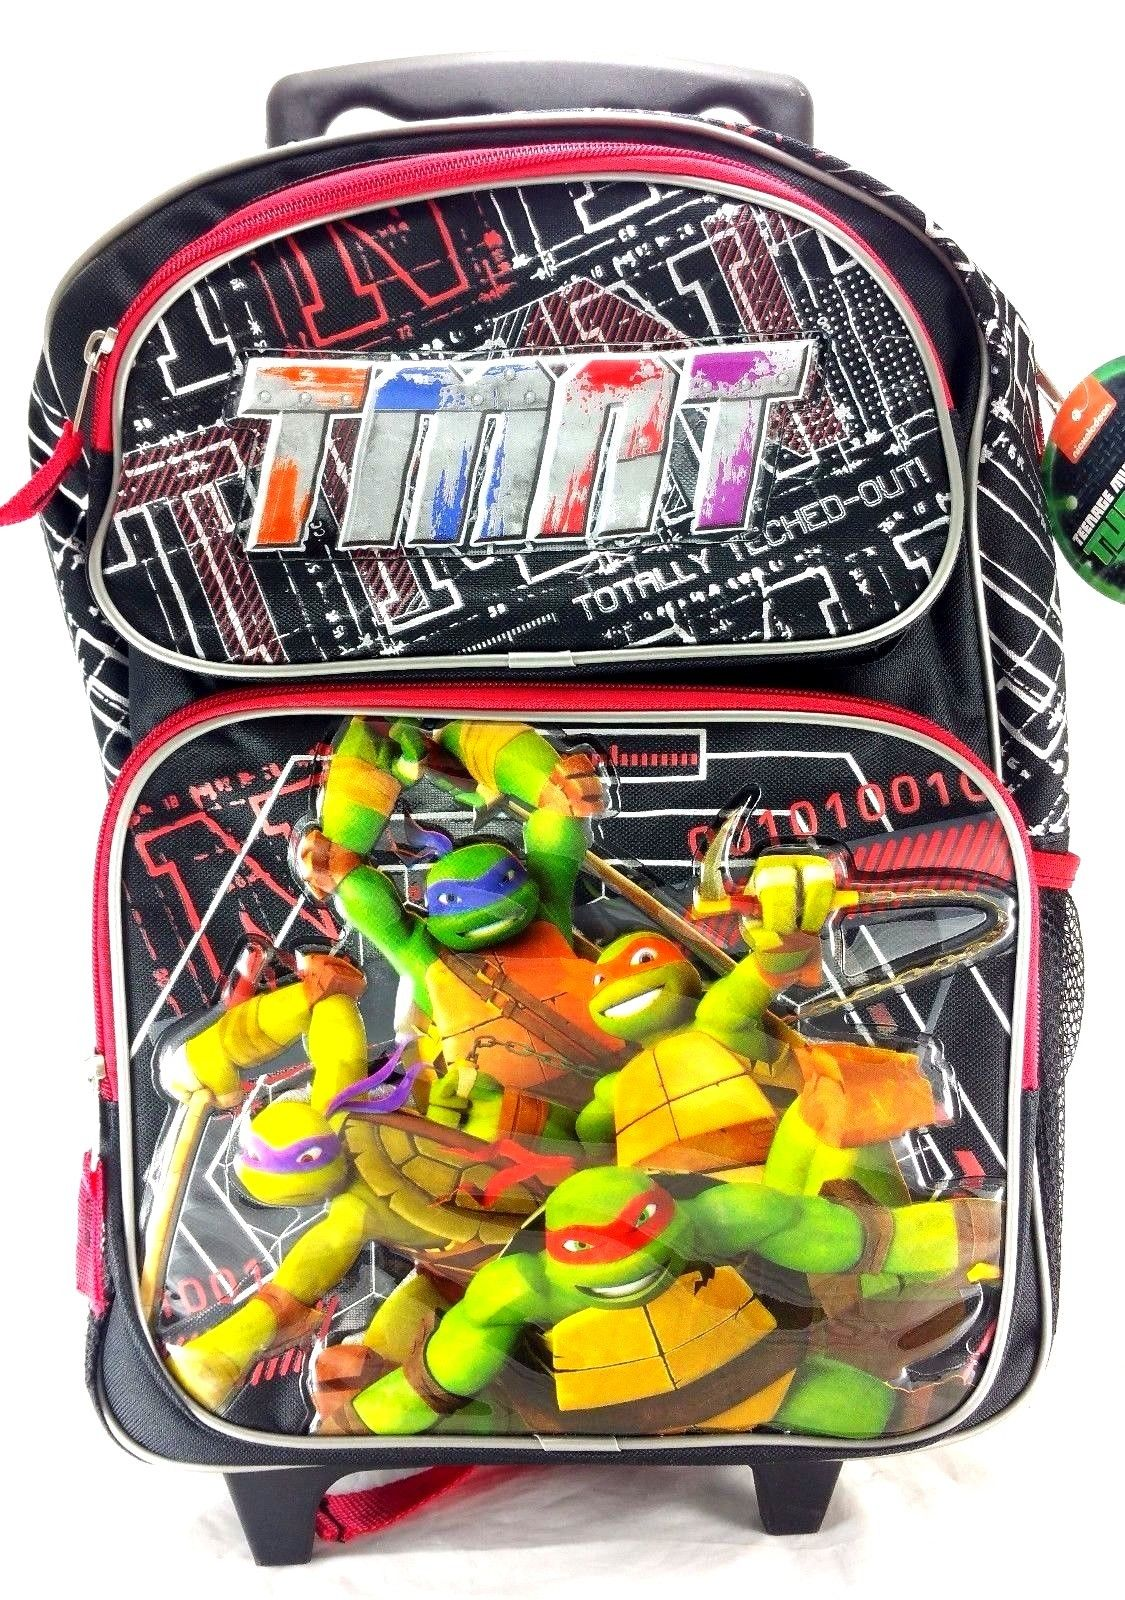 "TMNT Ninja Turtles 16"" Large Wheel Backpack; Red School Rolling Bag, Travel Roller back pack for boys"